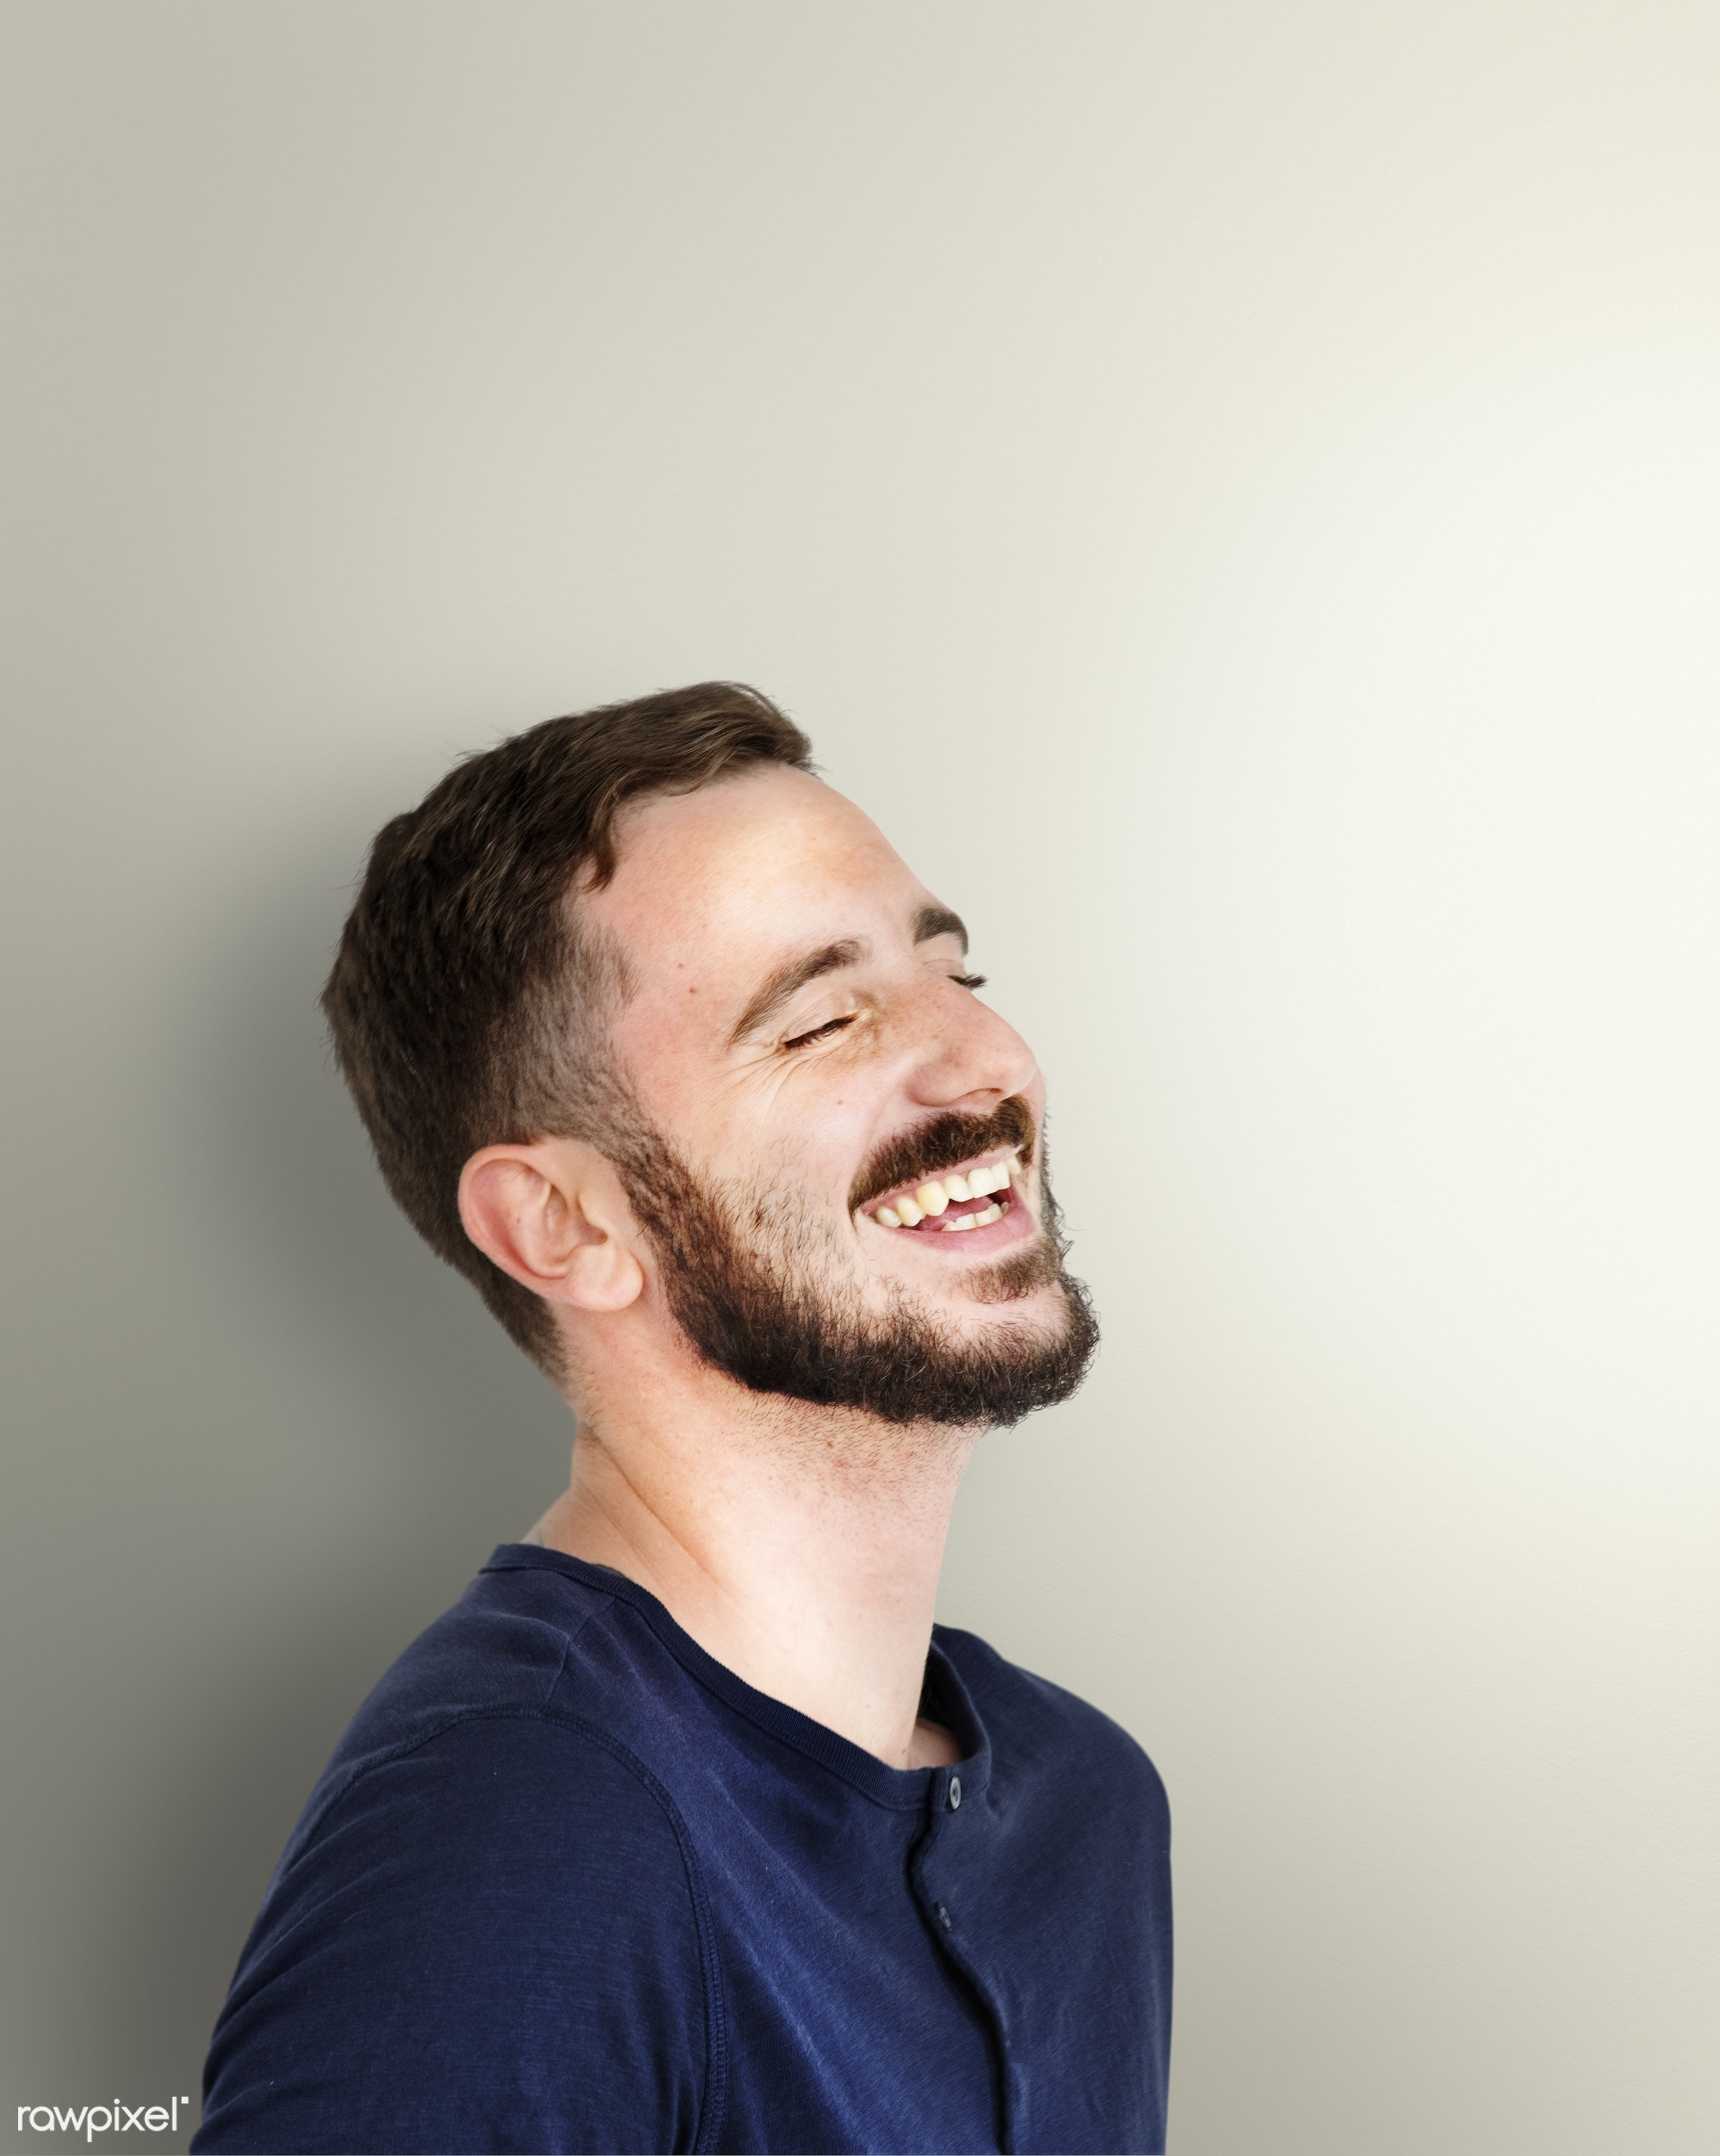 expression, person, caucasian, lifestyle, positive, cheerful, smiling, gentleman, cool, isolated, happiness, portrait,...